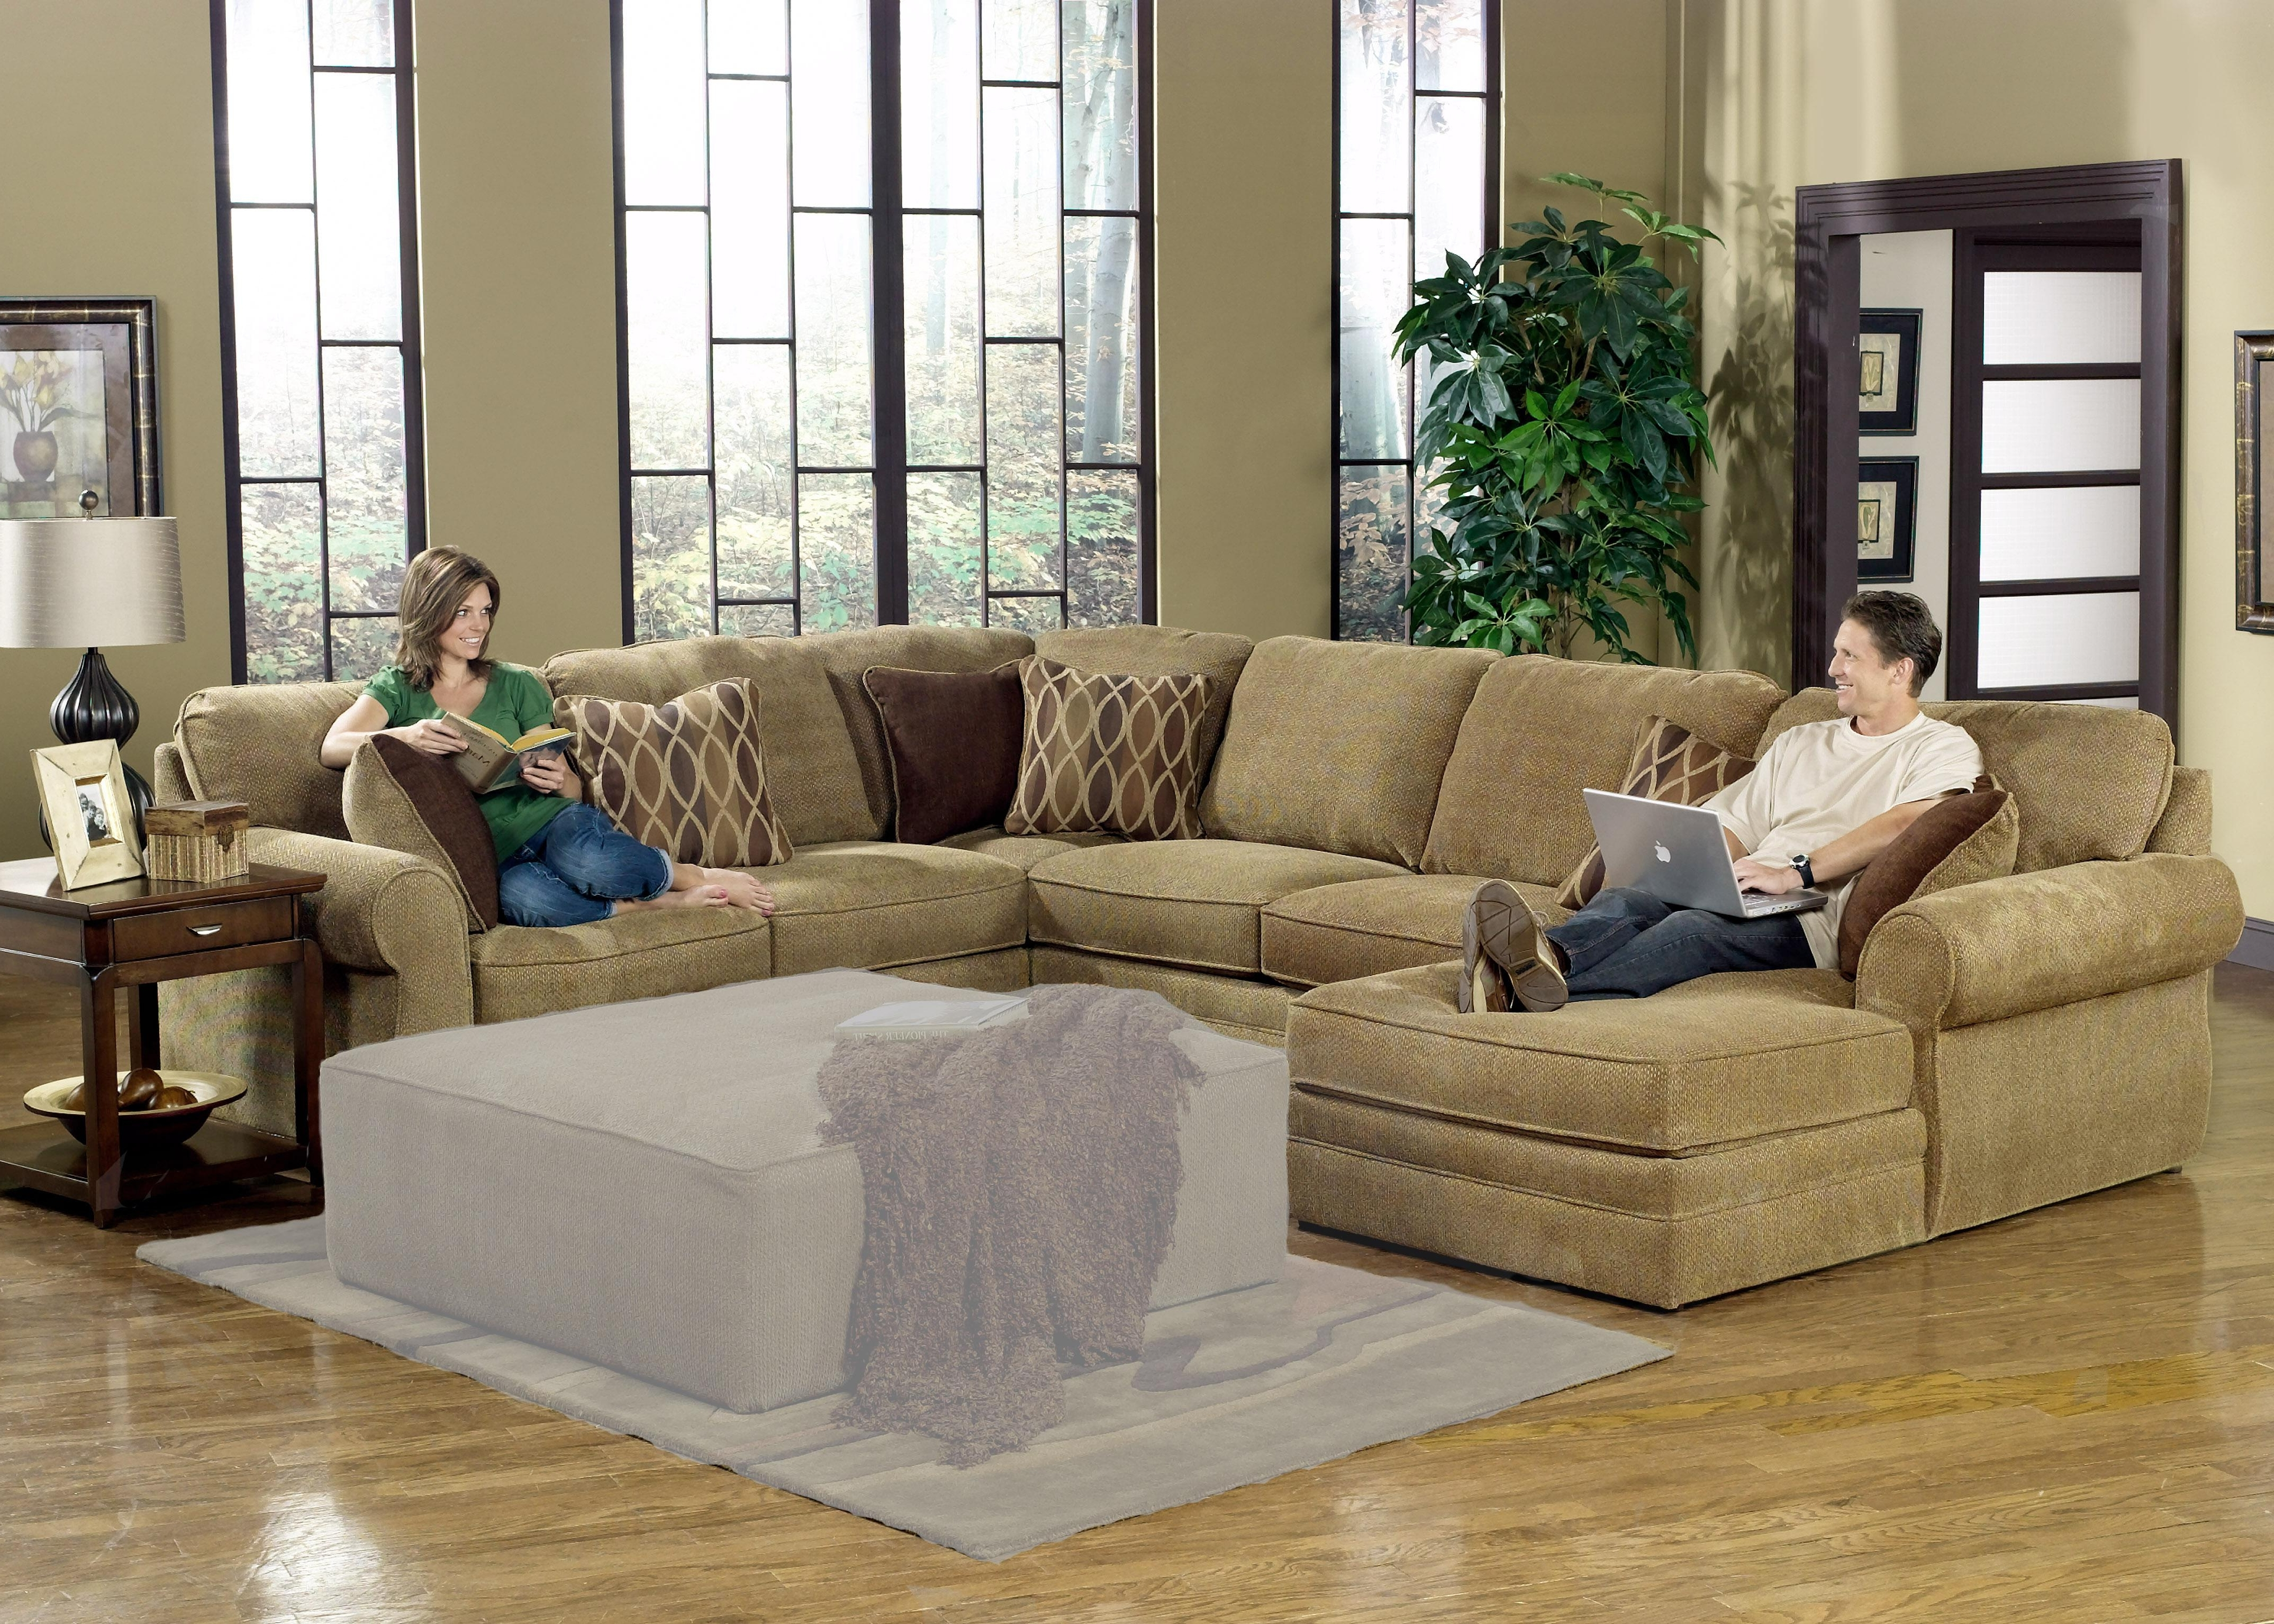 Fascinating U Shaped Sectional Sofas 123 Sofa Sectionals Canada With Regard To Recent Ontario Canada Sectional Sofas (Gallery 4 of 15)